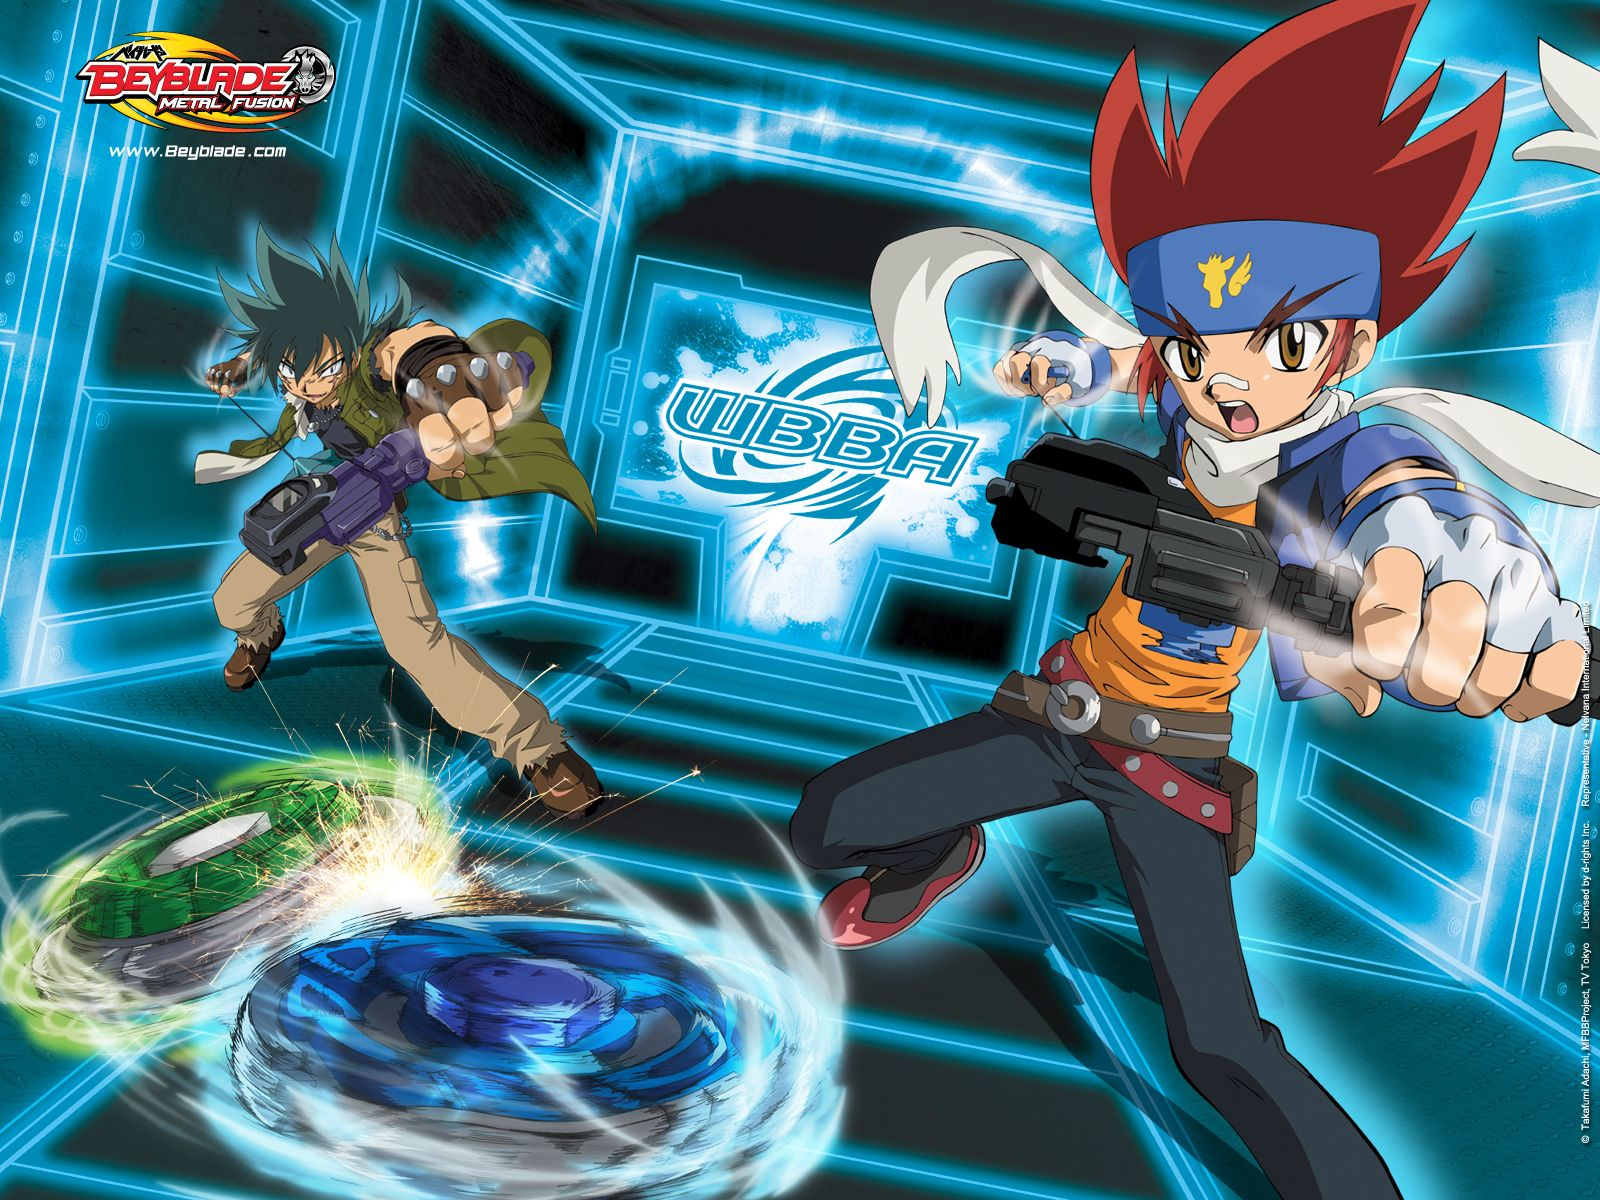 Beyblademf beyblade metal fusion photo party ideas pinterest beyblade metal fusion photo beyblademf voltagebd Images